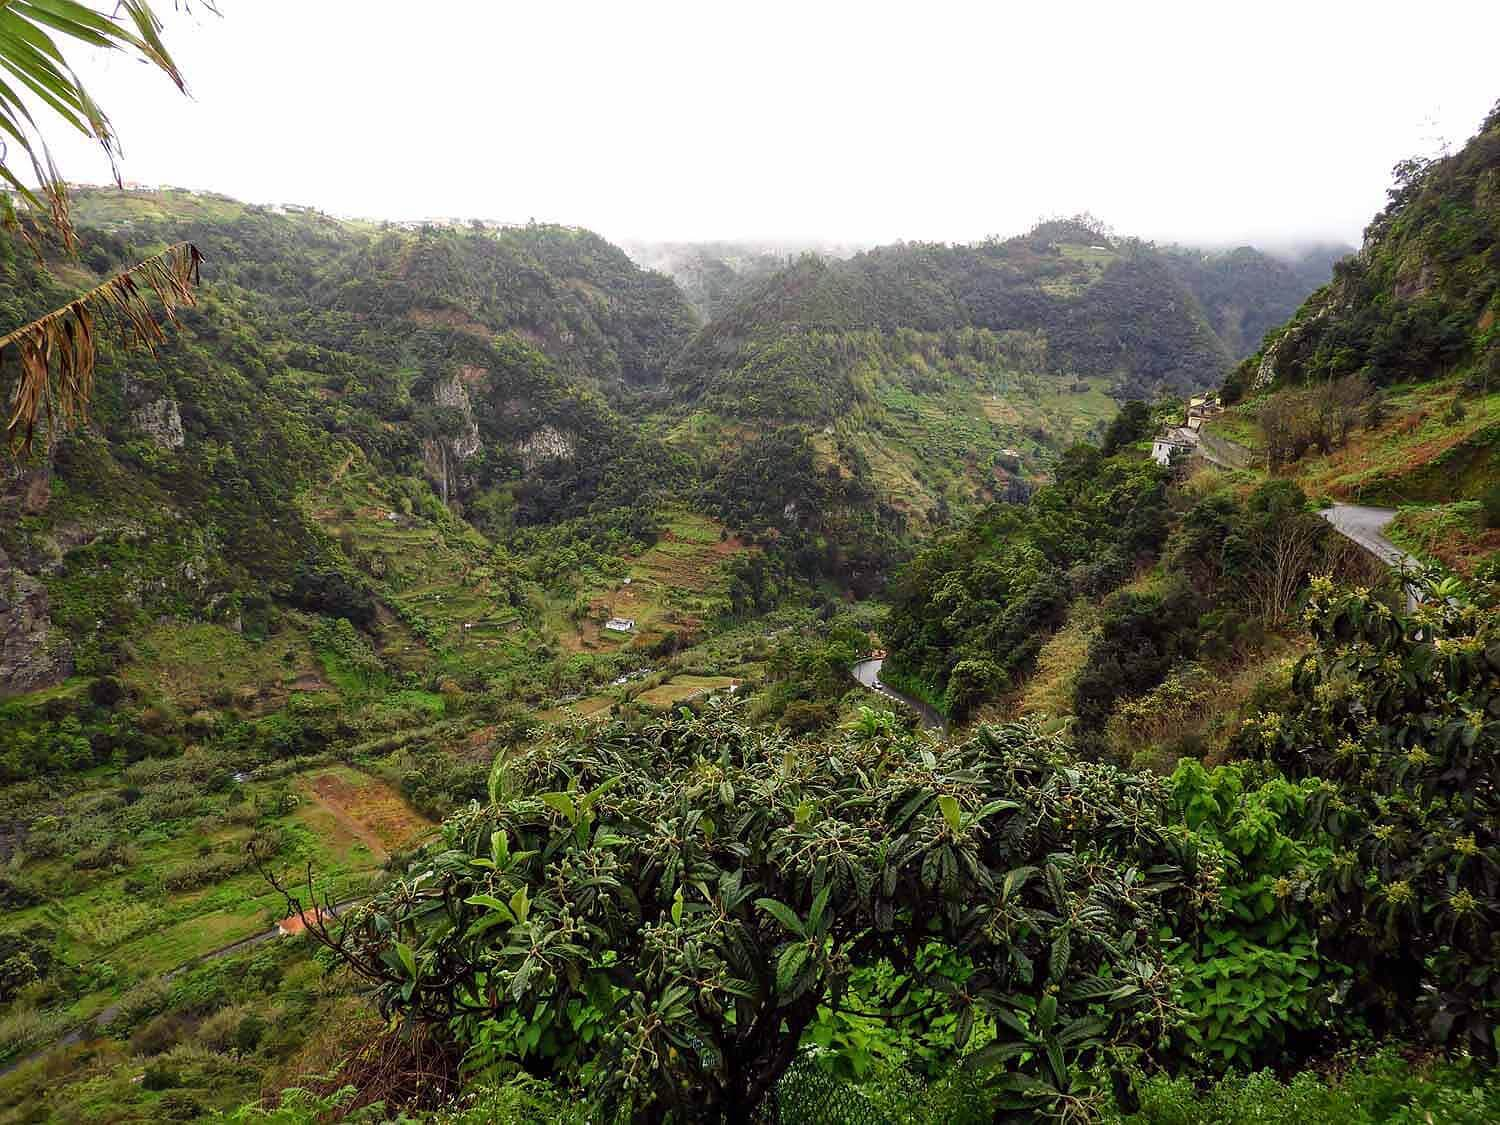 portugal-madeira-island-greenery-mountains-forest-rainy-north-side-village-waterfall.jpg